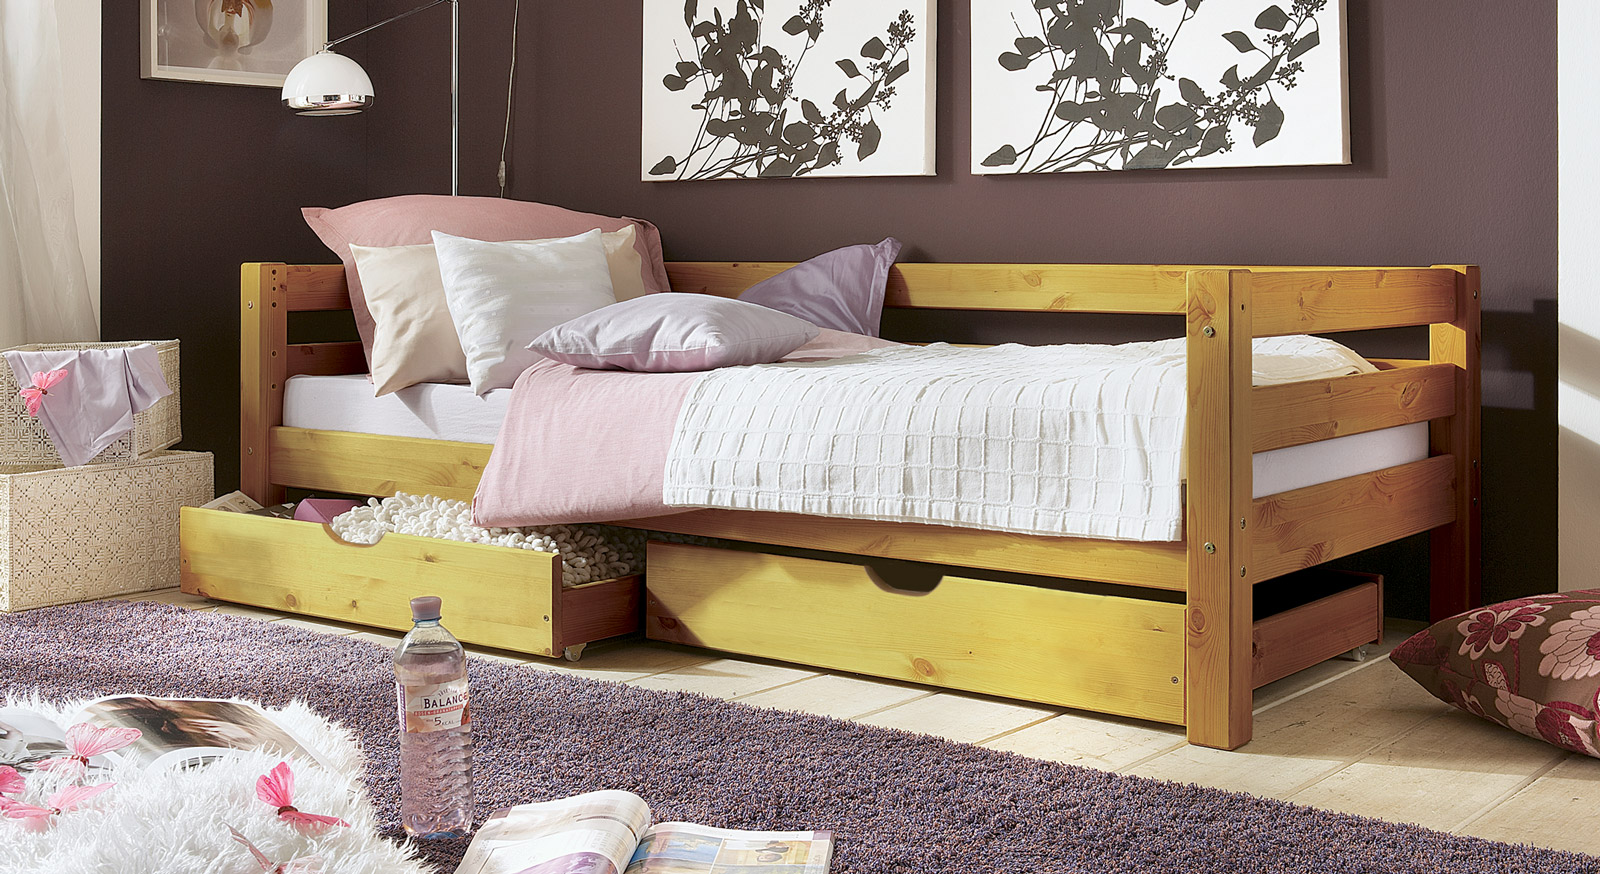 kinderbett in wei aus kiefer t v gepr ft kids paradise basic. Black Bedroom Furniture Sets. Home Design Ideas